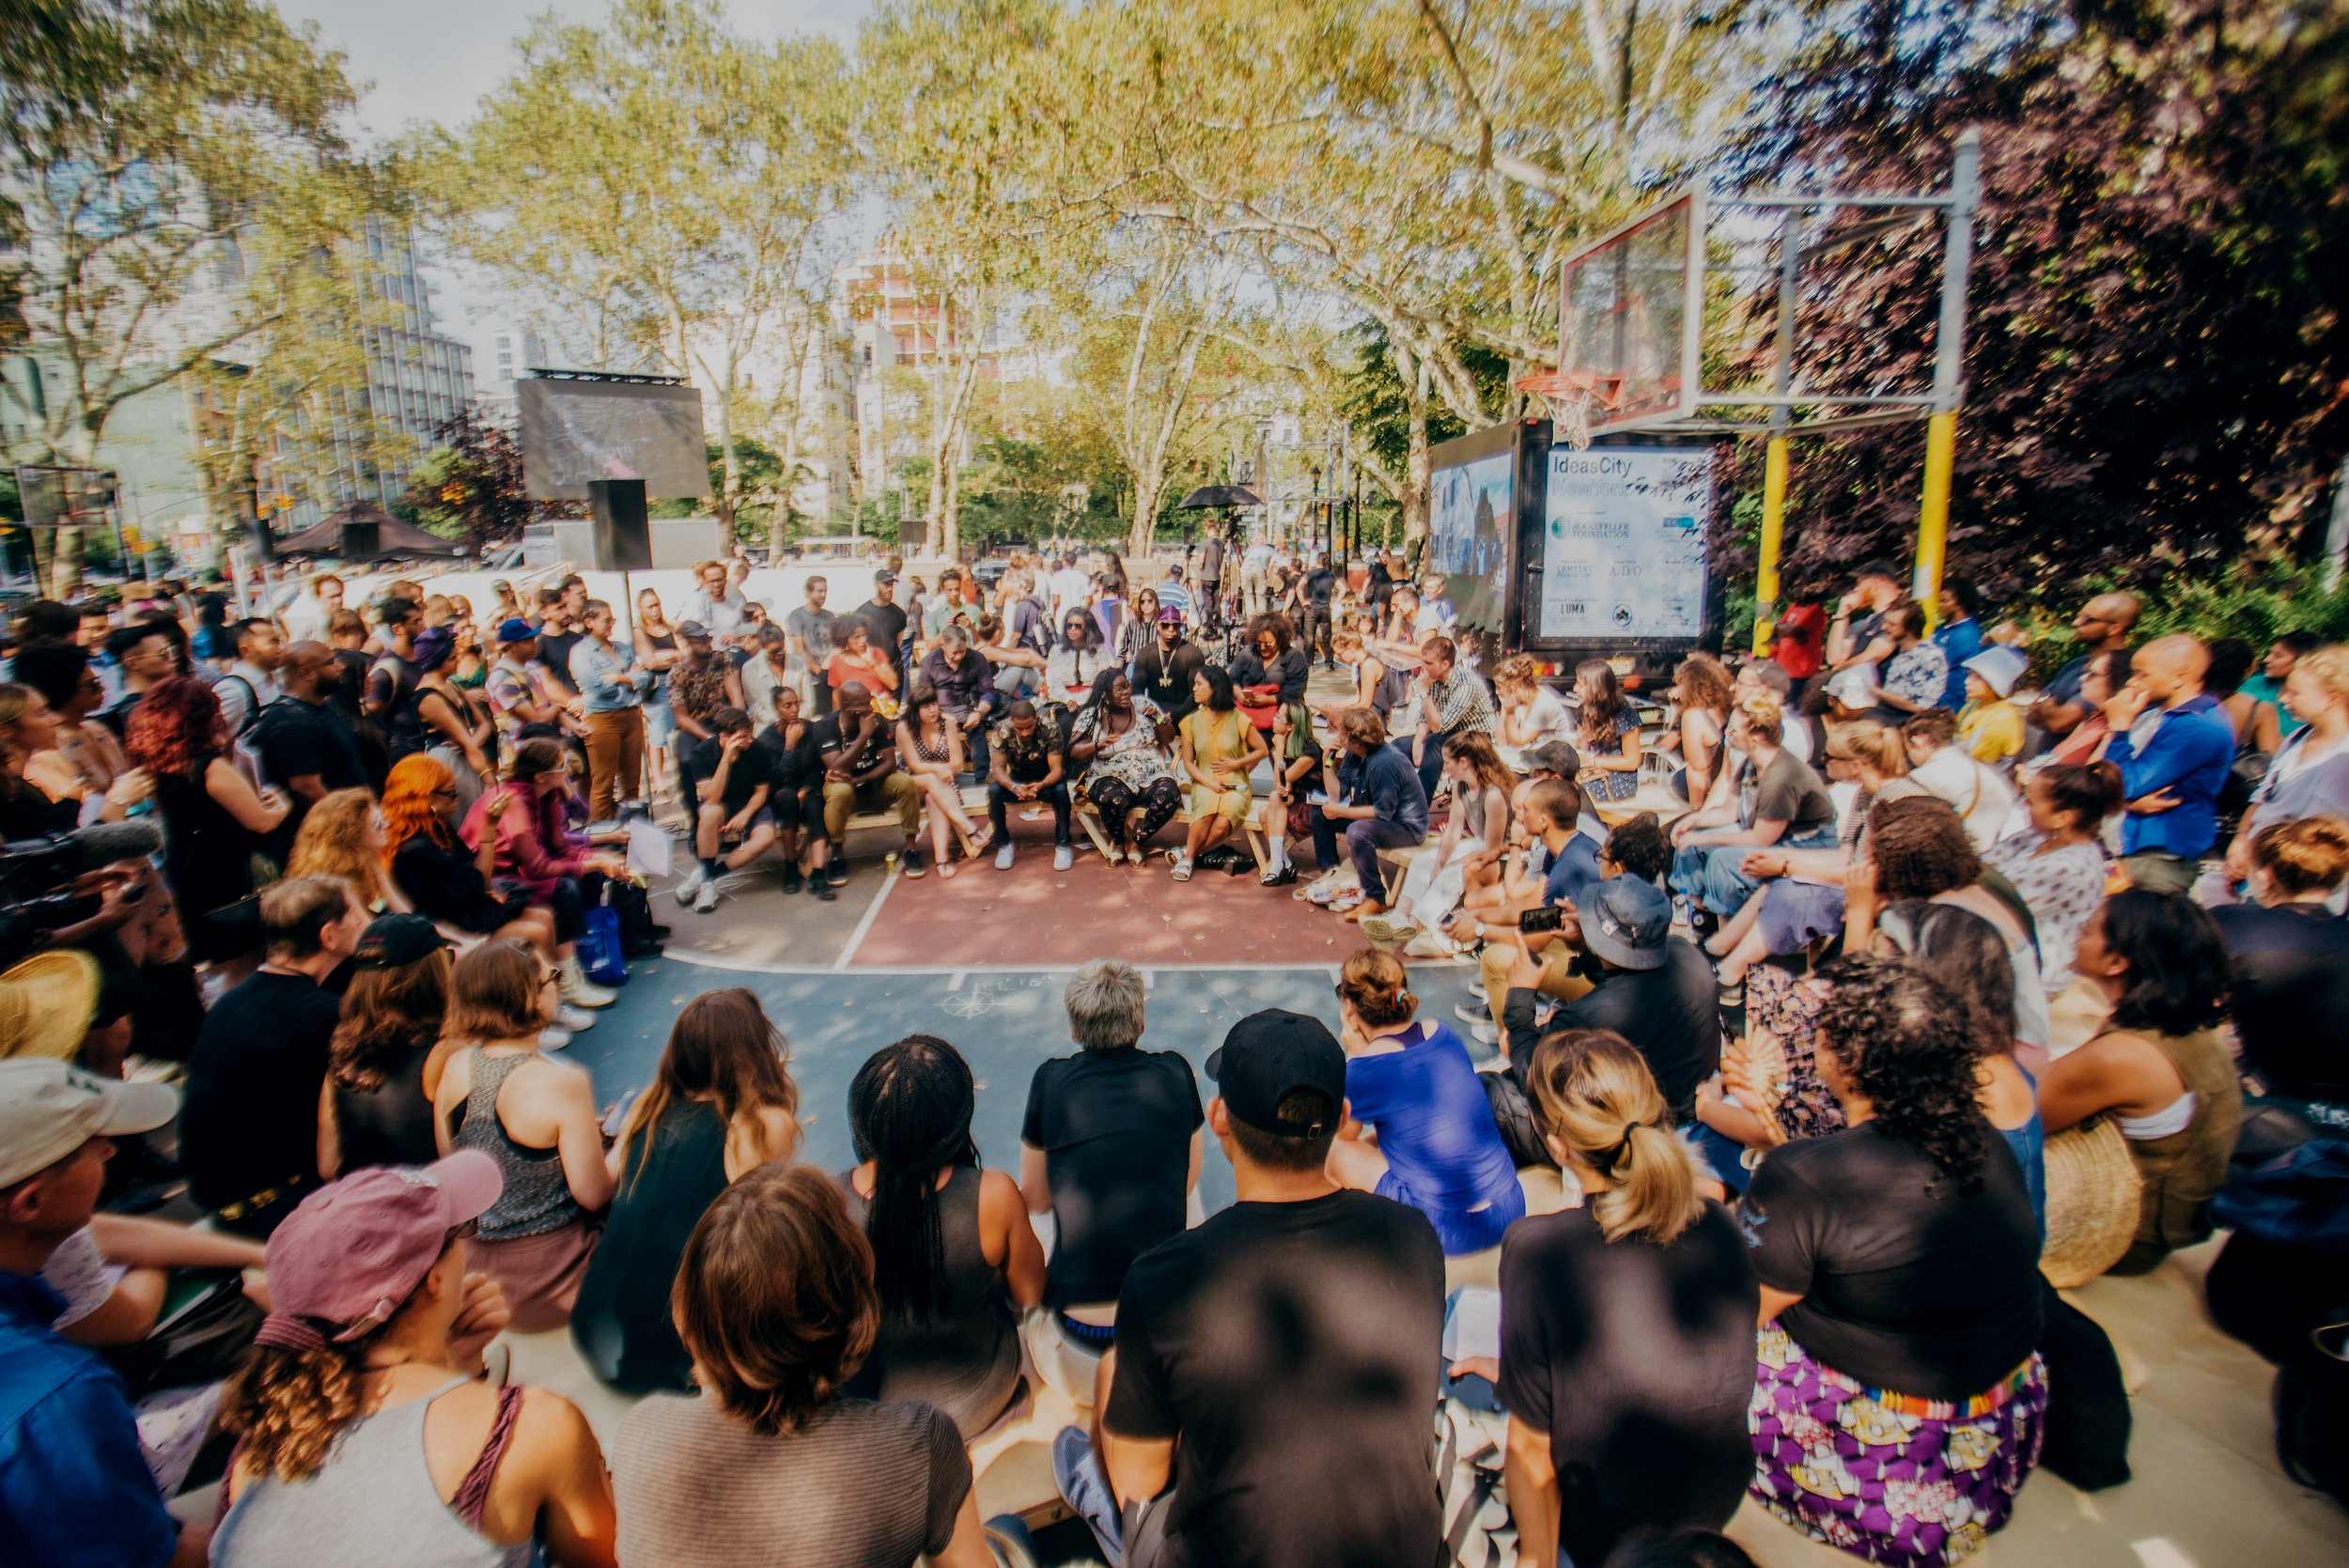 Ideas for the City - in partnership with IdeasCity